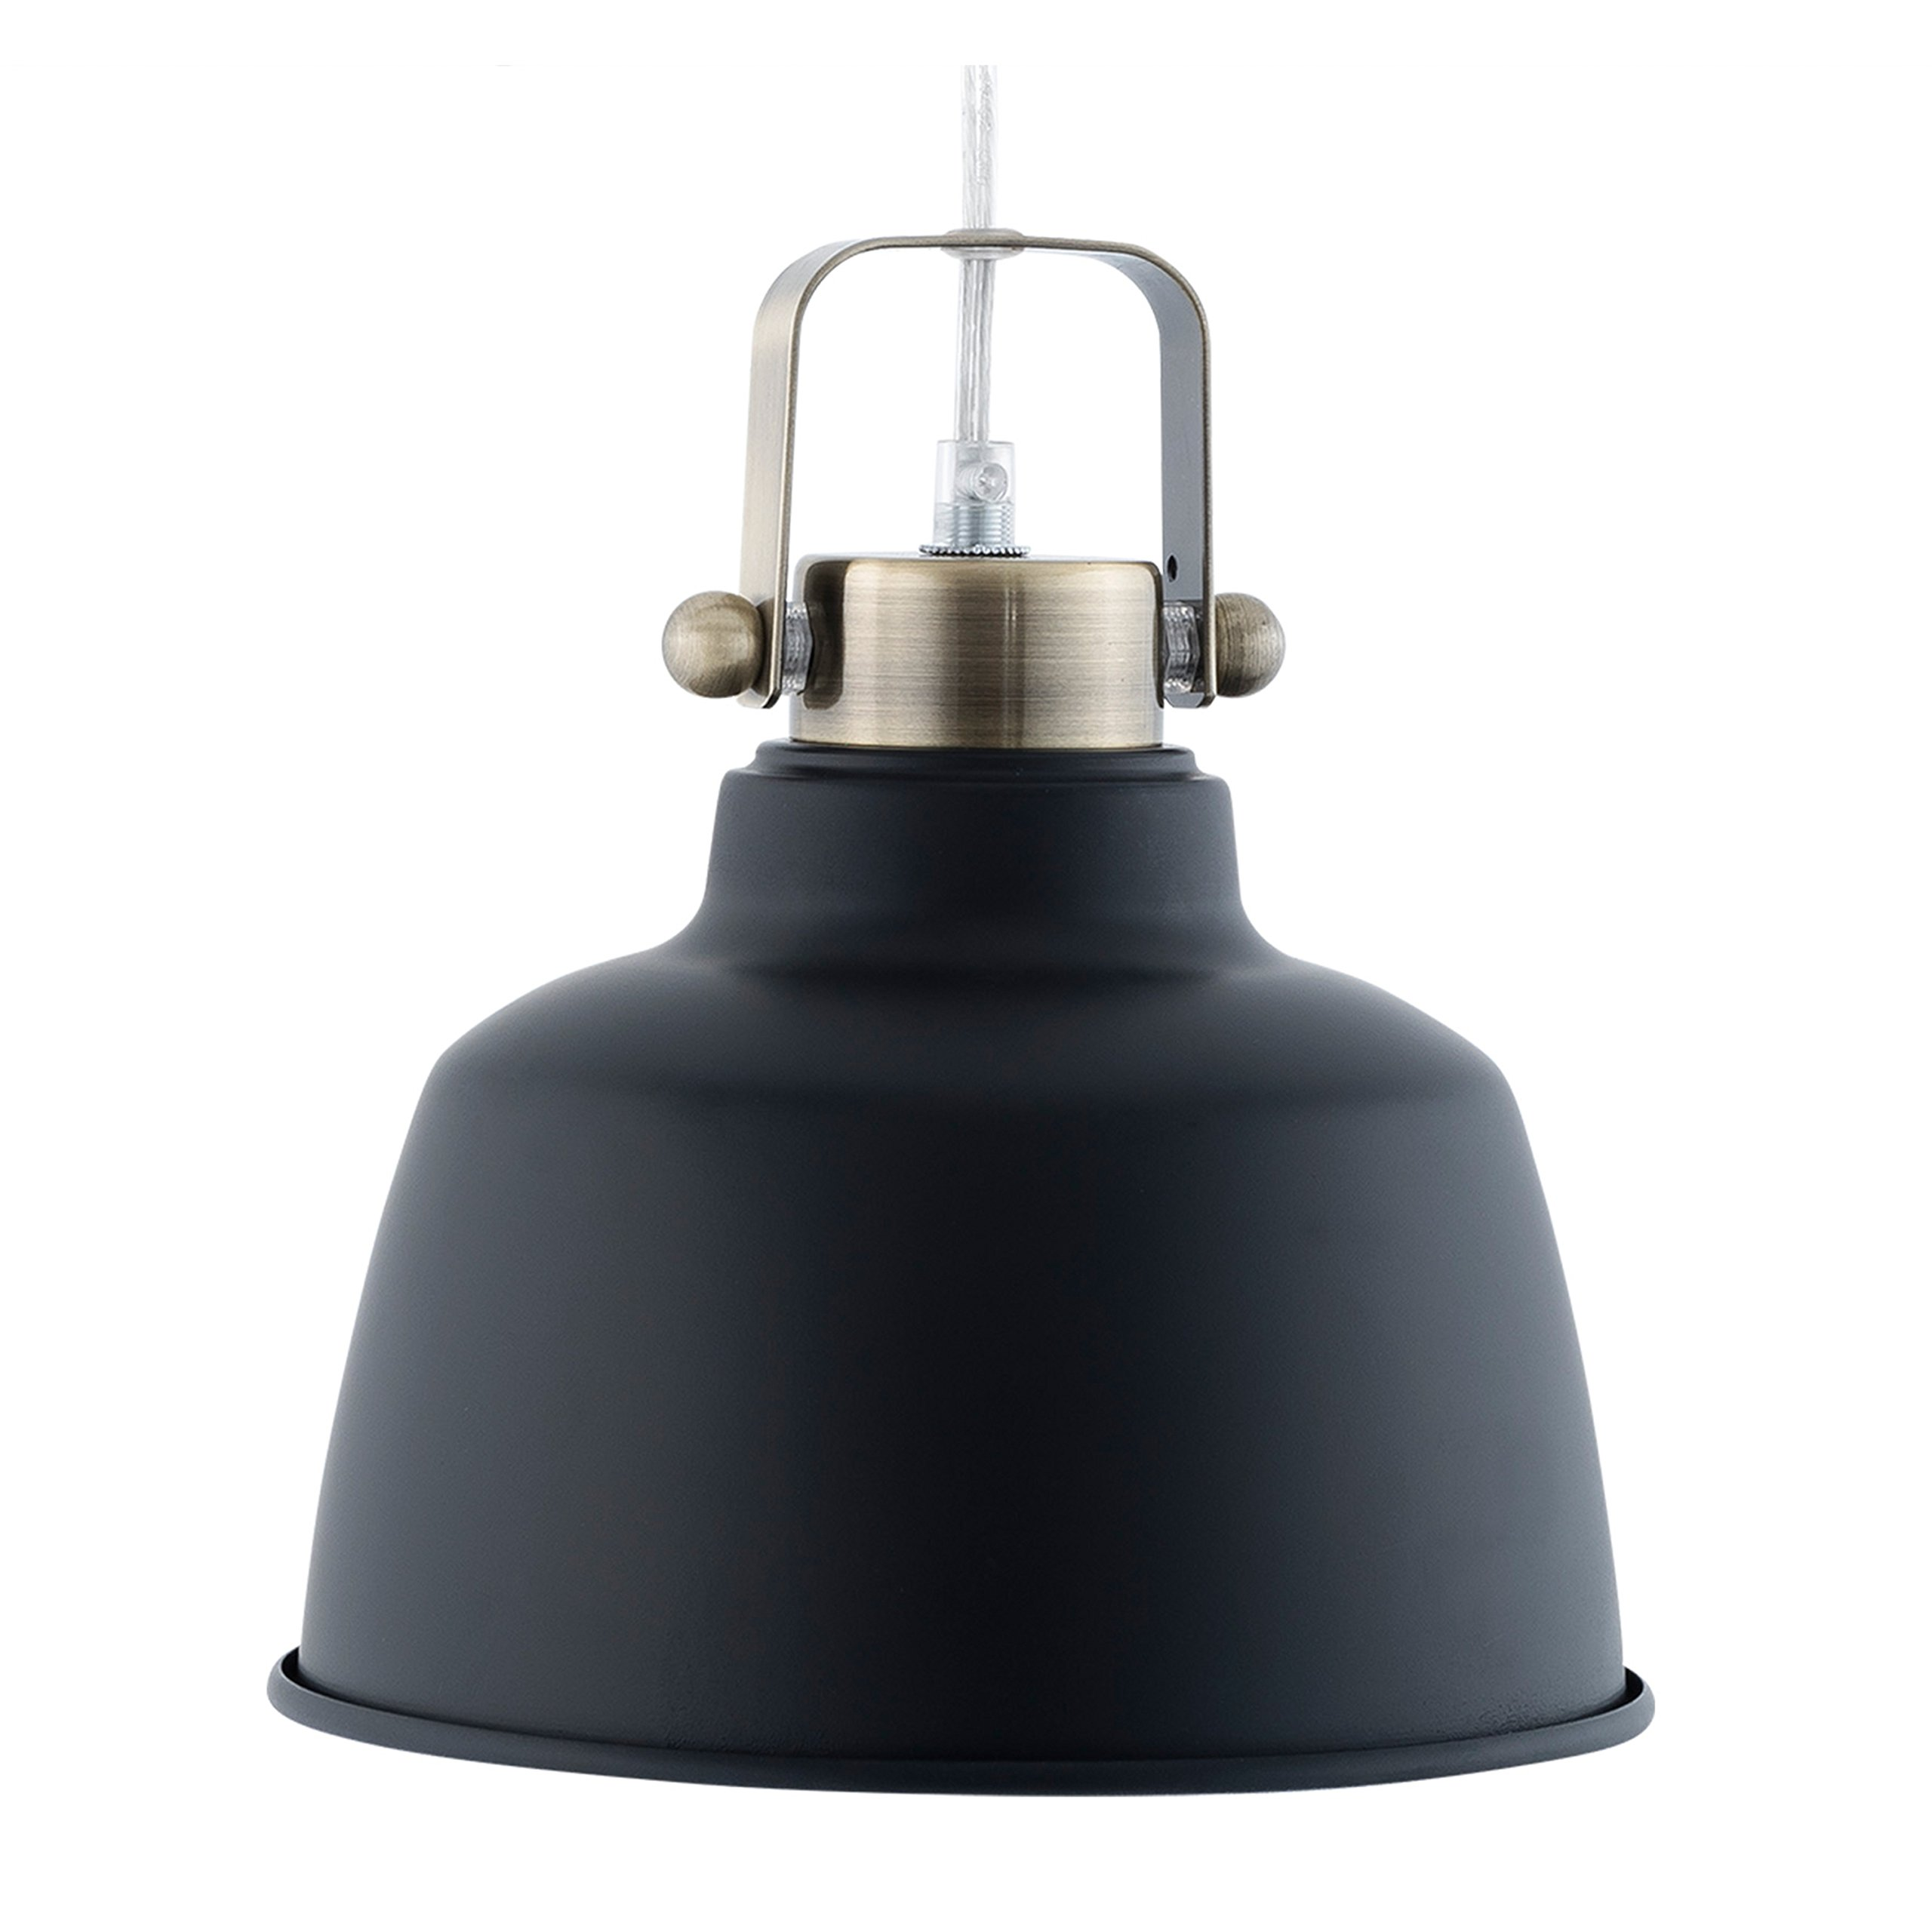 Light Society Mercer Mini Pendant Light, Matte Black Shade with Brushed Brass Finish, Modern Industrial Farmhouse Lighting Fixture (LS-C169-BLK)